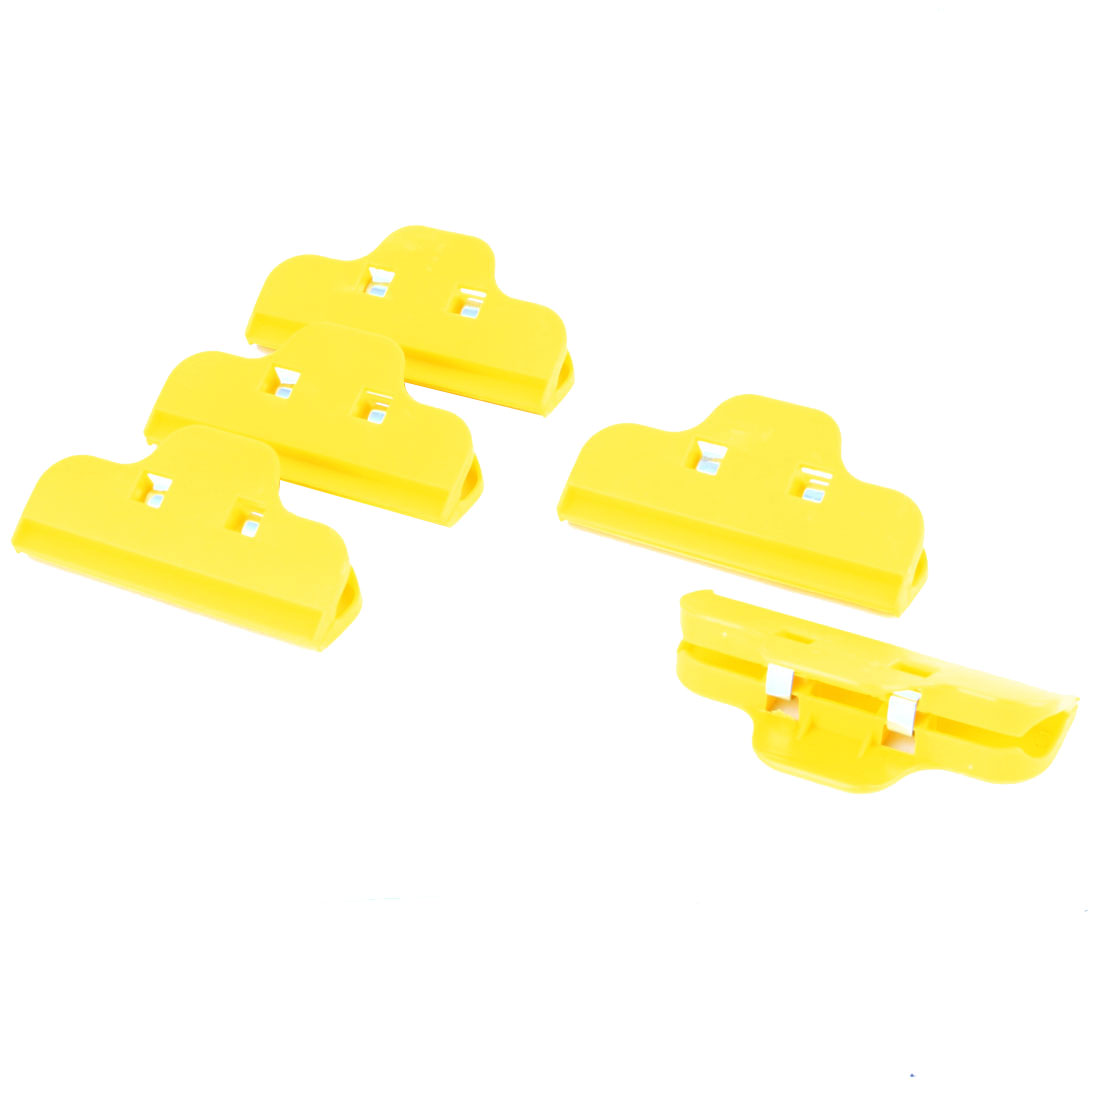 Apartment School Plastic Food Snacks Bags Storage Binder Holder Organizer Clip Clamp Yellow 5pcs